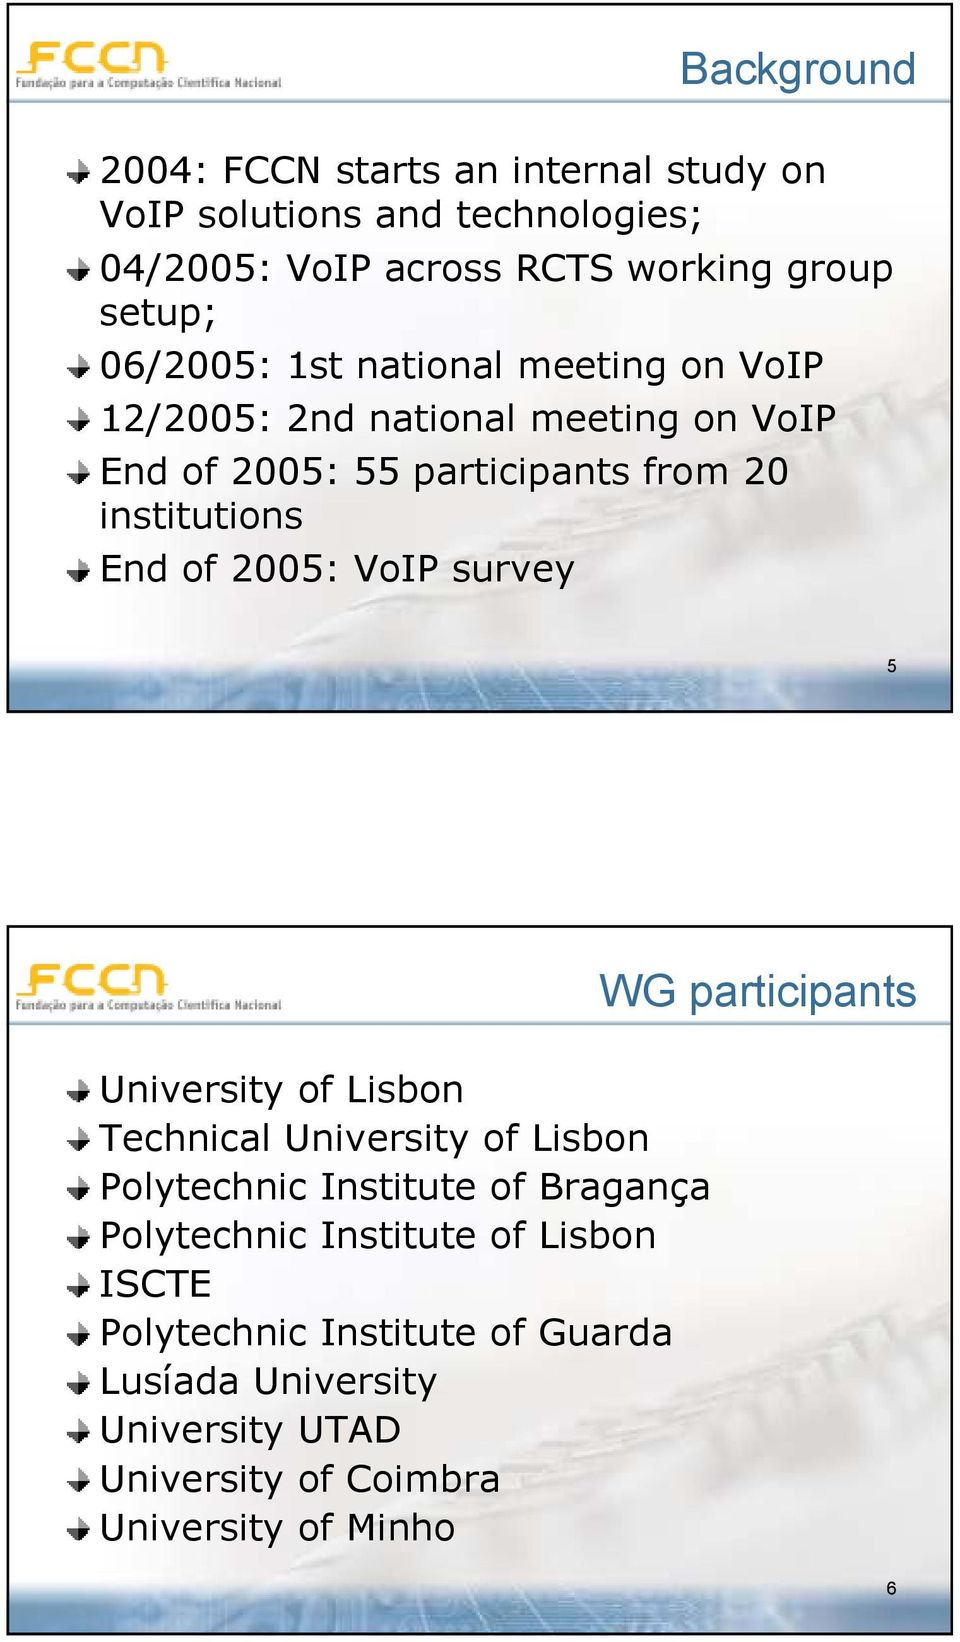 2005: VoIP survey 5 WG participants University of Lisbon Technical University of Lisbon Polytechnic Institute of Bragança Polytechnic